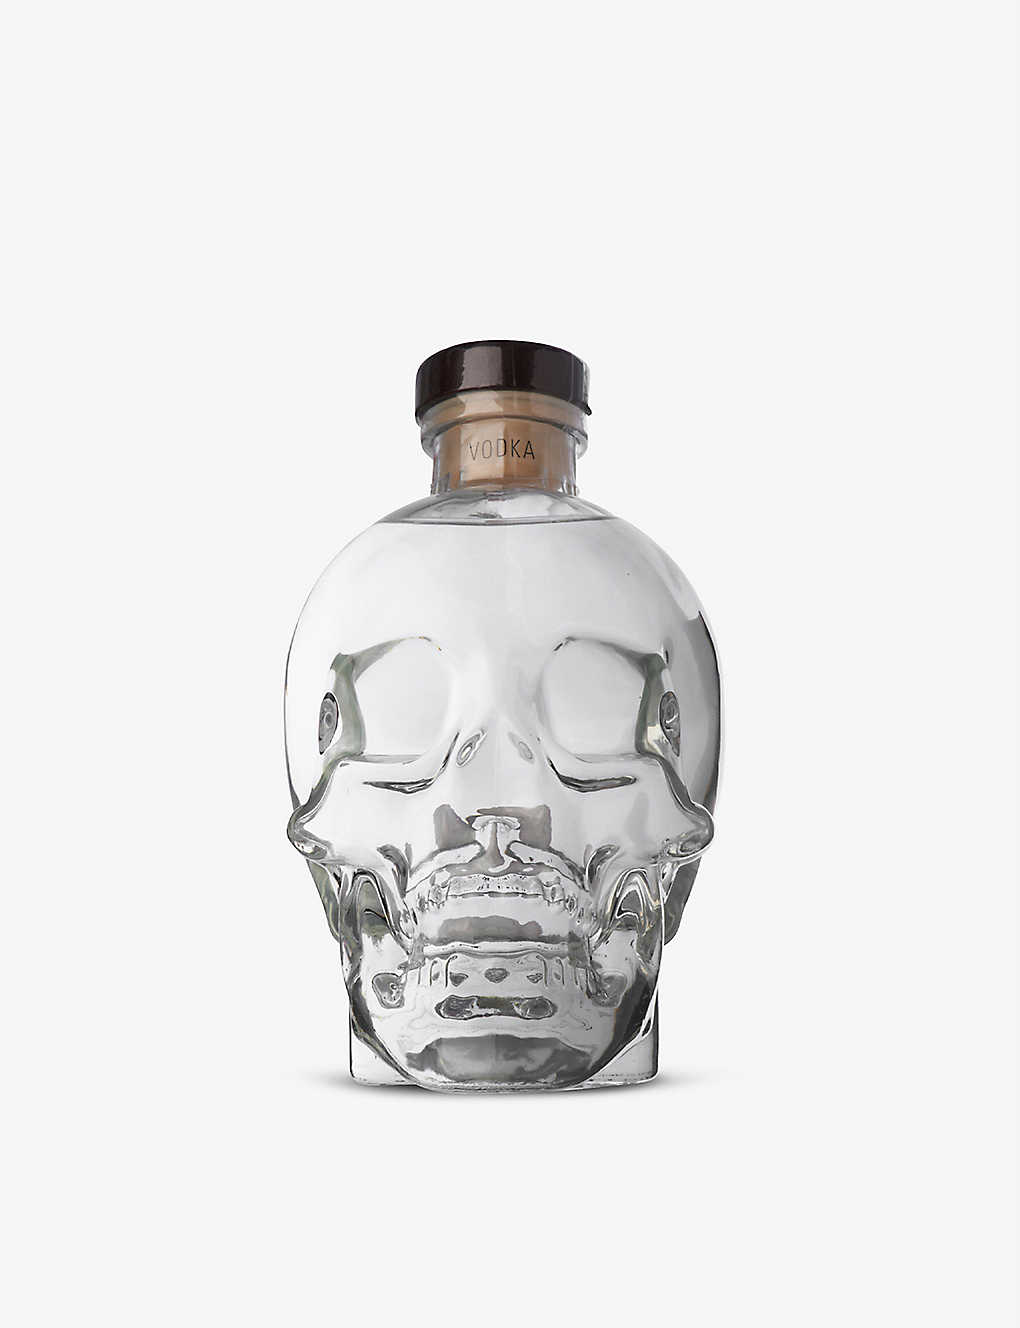 CRYSTAL HEAD VODKA: 伏特加 700 毫升